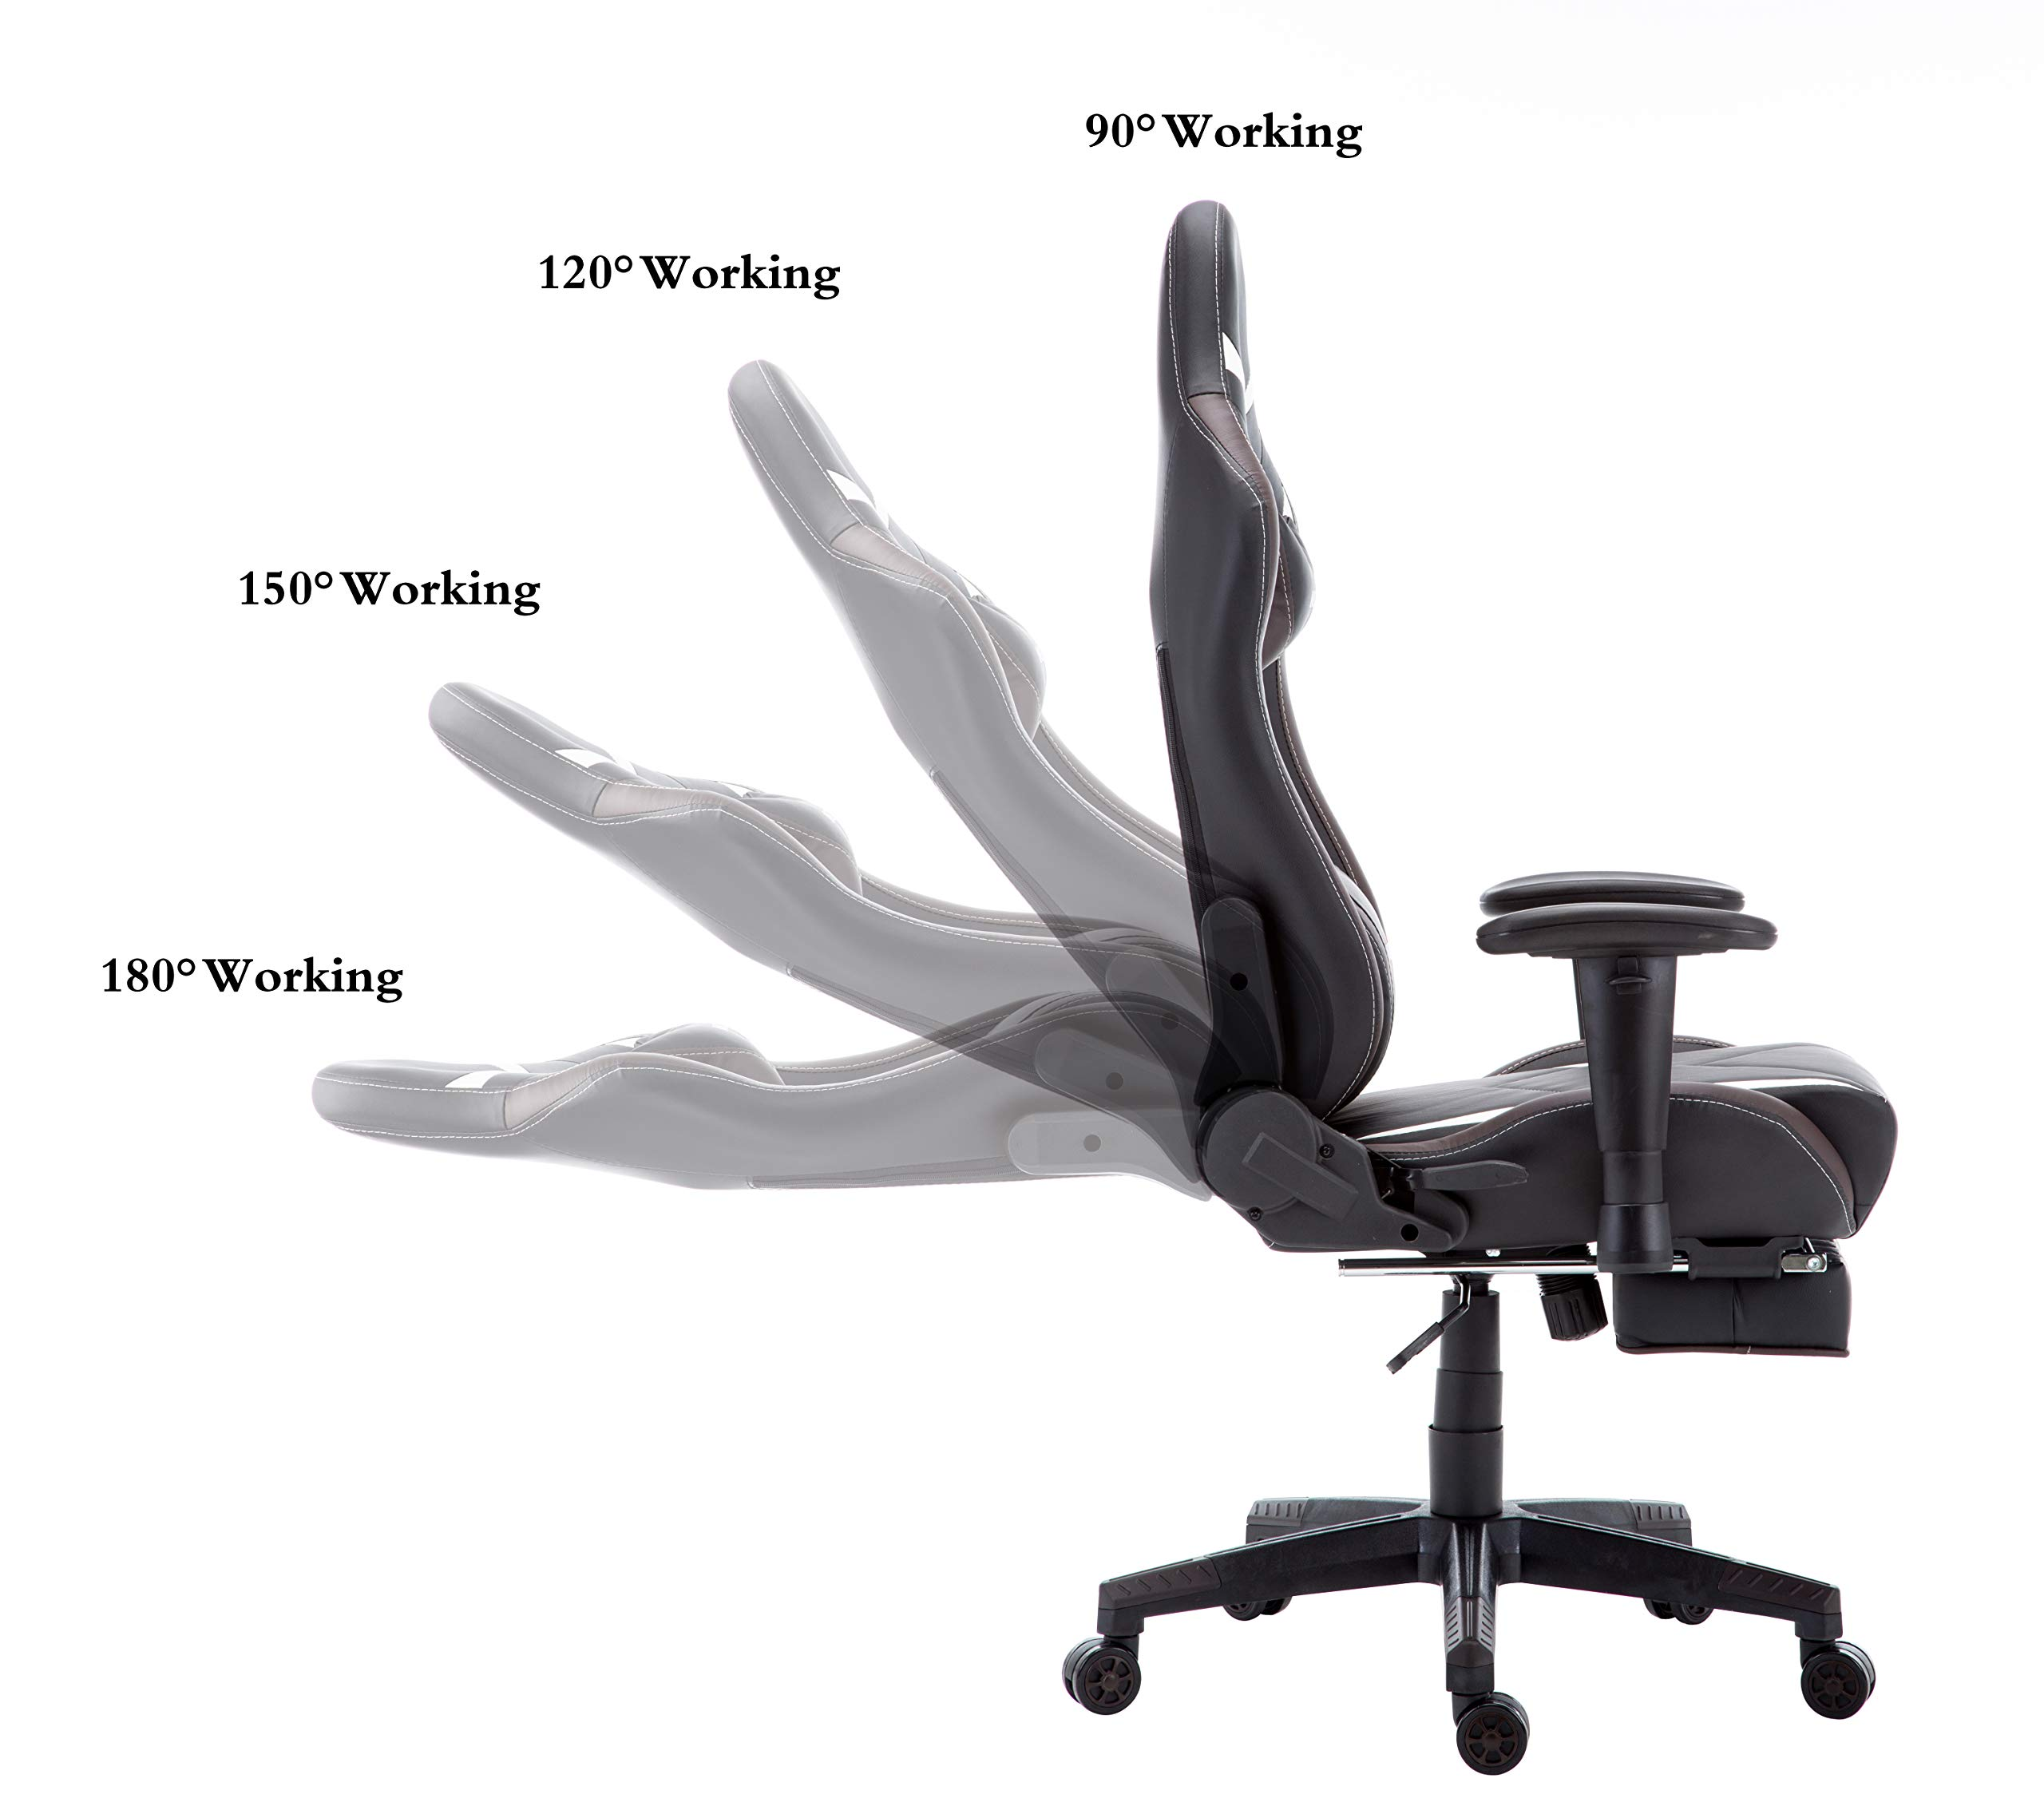 Morfan Gaming Chair Large Size Massage Function Ergonomic Racing Style PC Computer Office Chair with Retractable Footrest & Adjustable Lumbar and Headrest Pillows (Black/Brown) by MORFAN (Image #5)